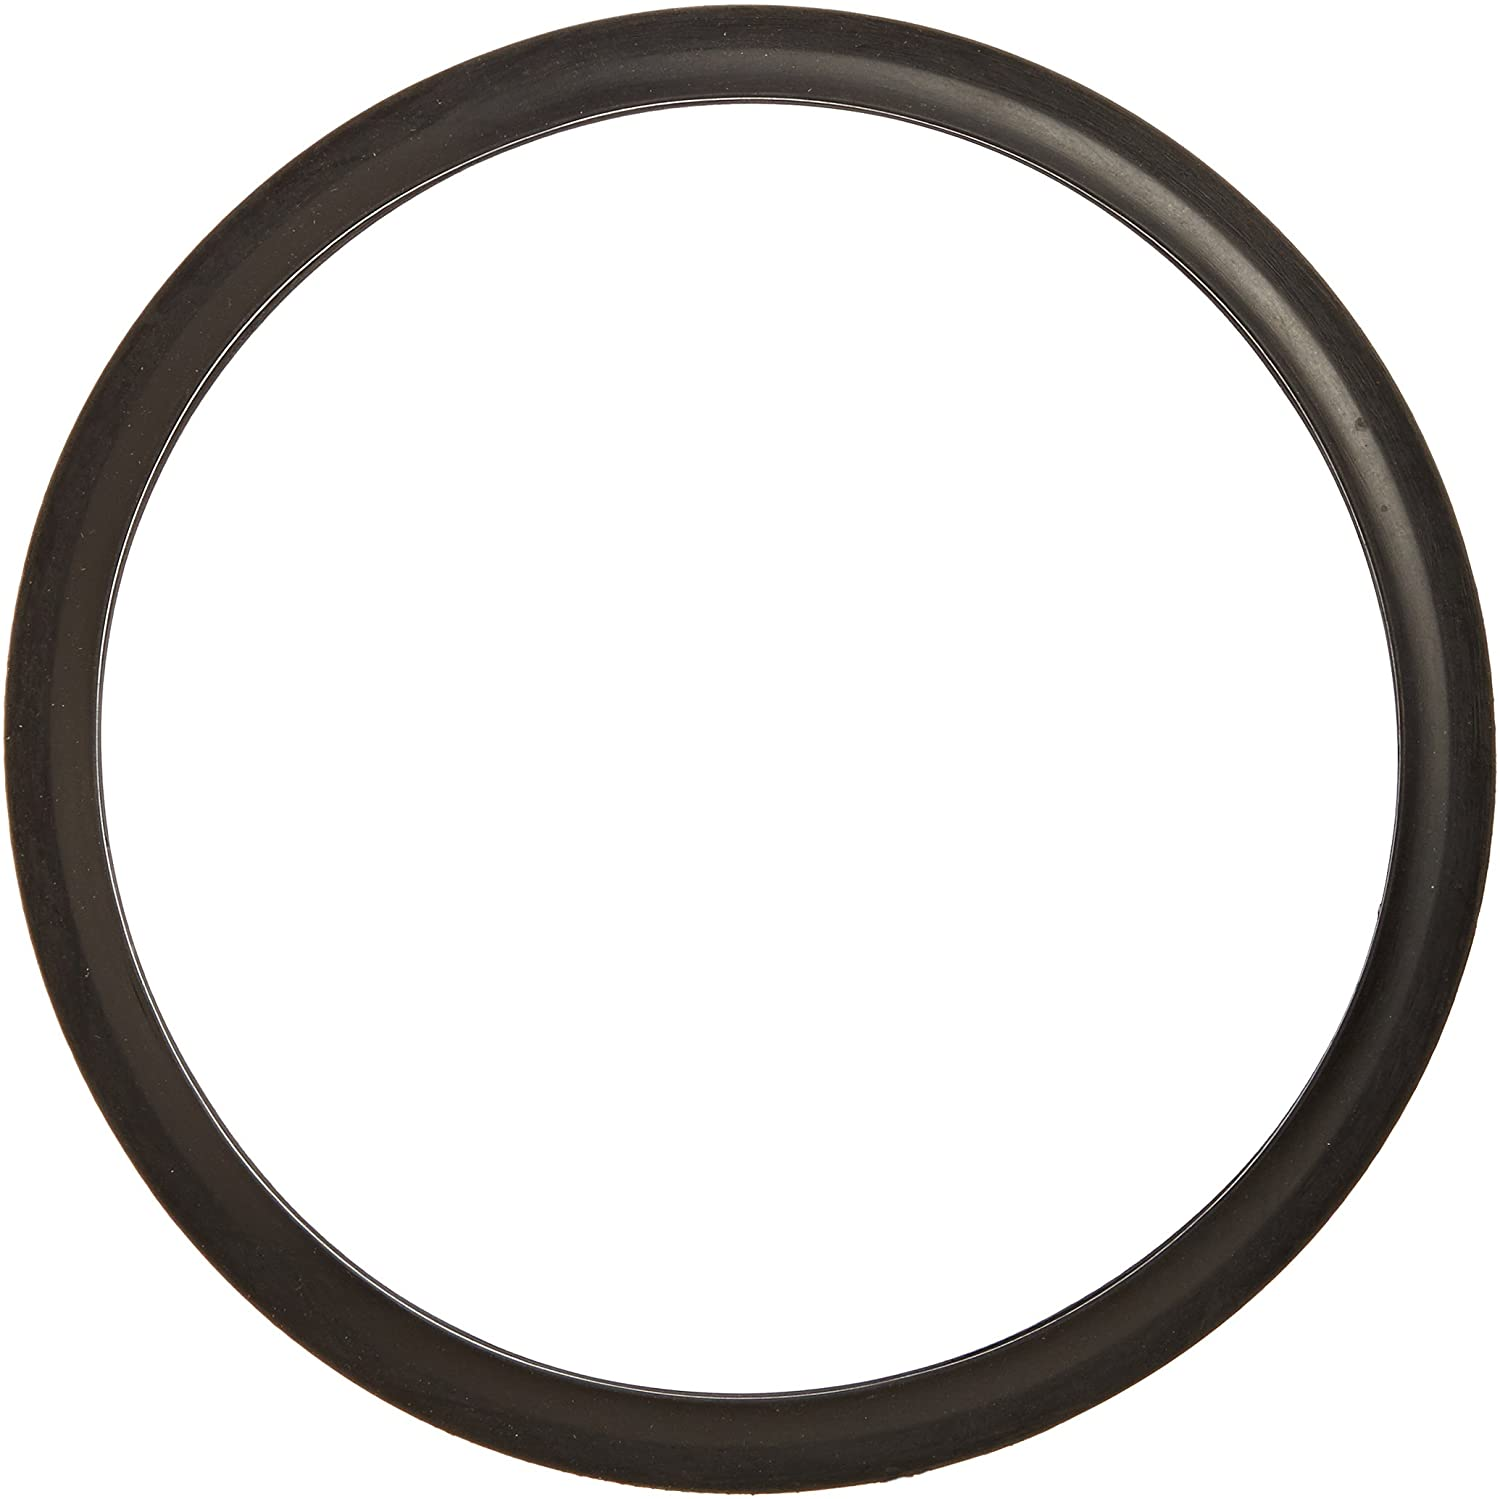 Prestige Mini Sealing Ring Gasket Max 82% OFF Deluxe for 3-Liter Plus Our shop most popular Alumin